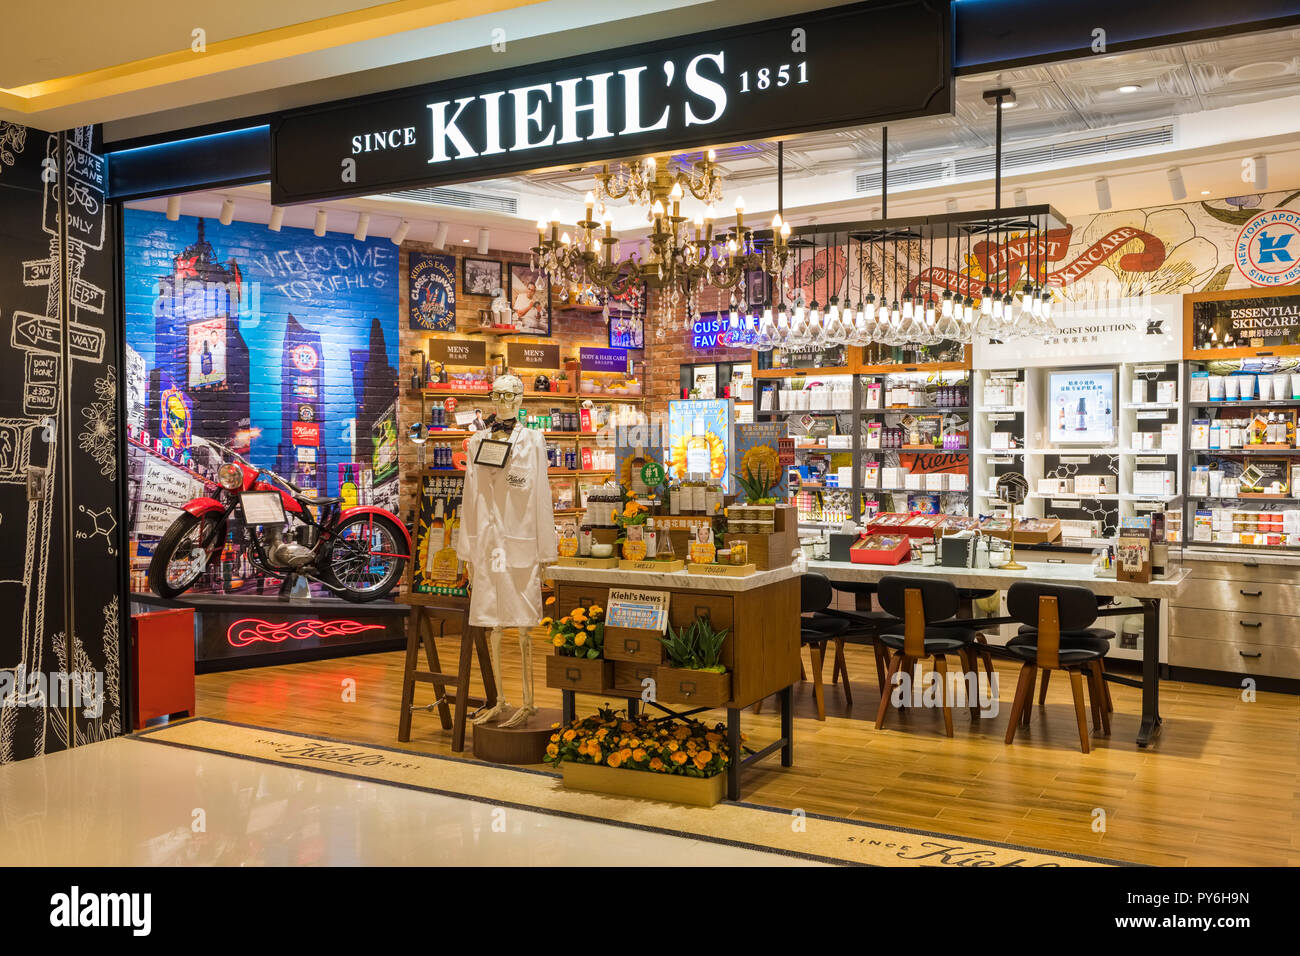 Kiehls store in Shanghai, China, Asia - Stock Image